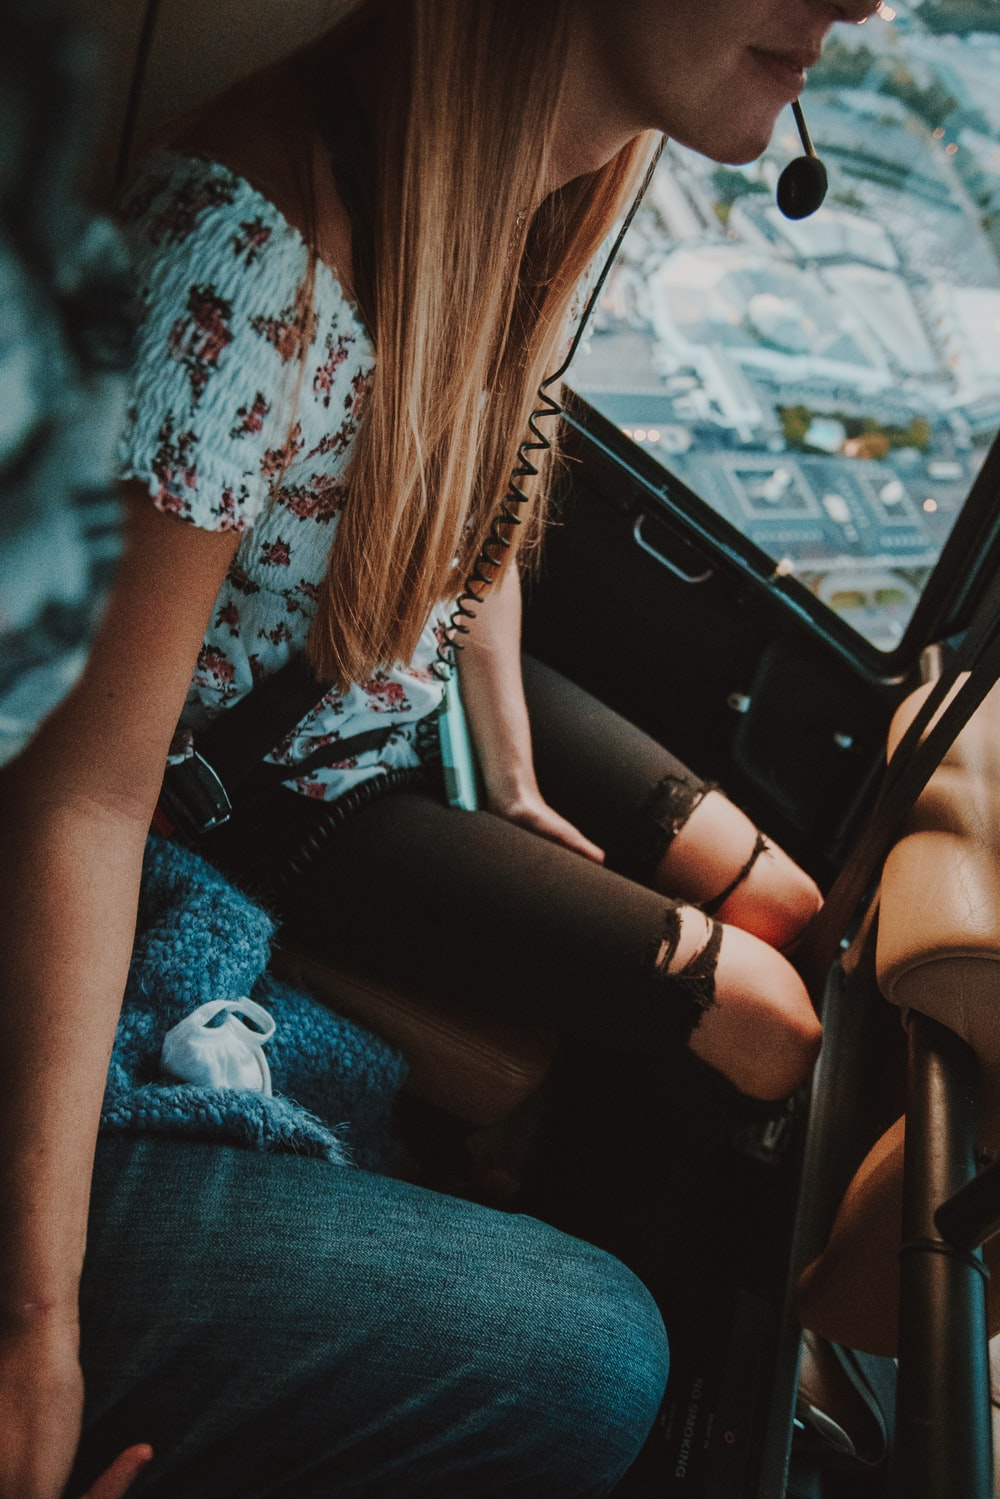 woman in white and red floral shirt sitting on car seat